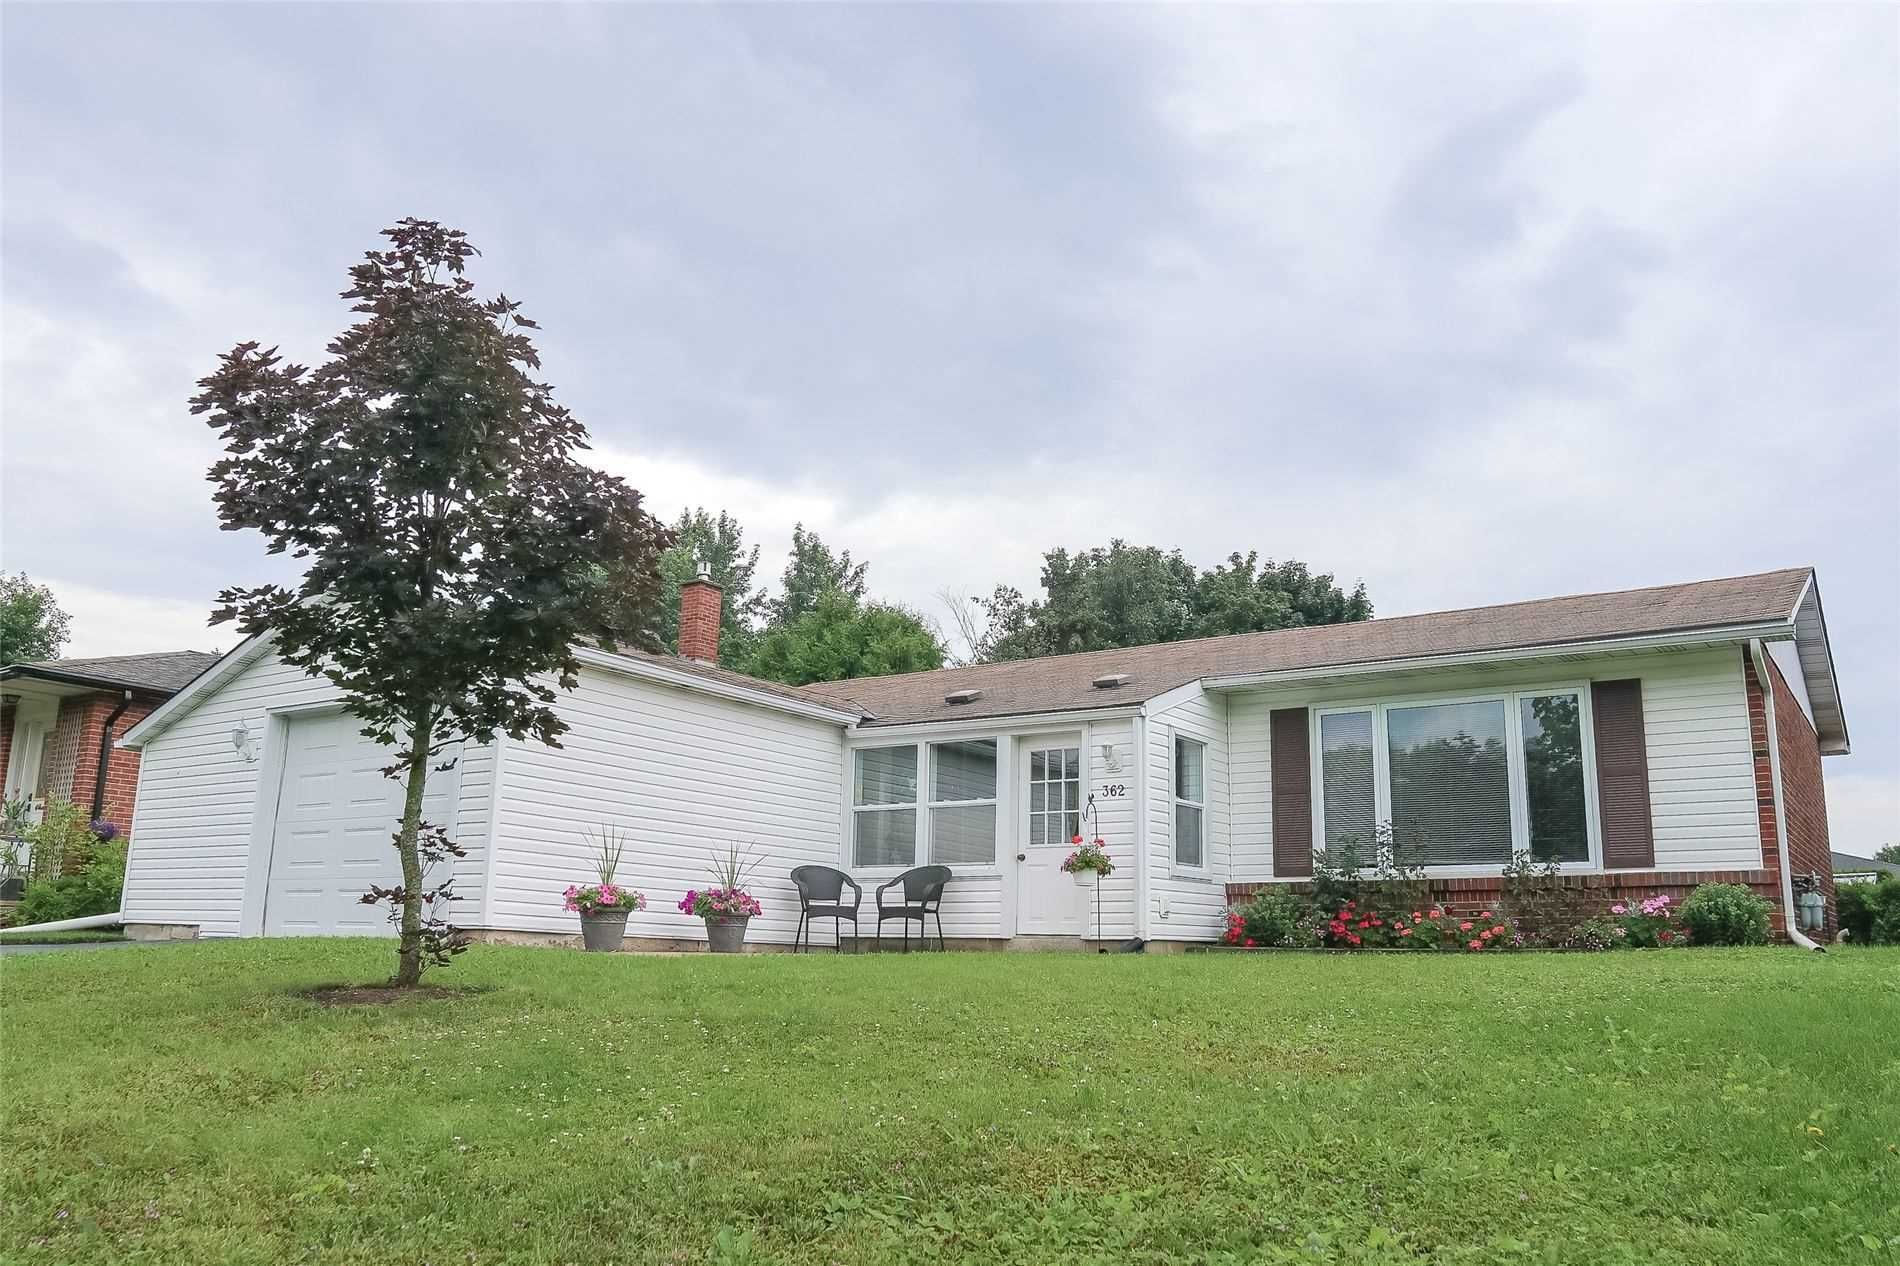 Main Photo: 362 S Jelly Street South Street: Shelburne House (Bungalow) for sale : MLS®# X5324685